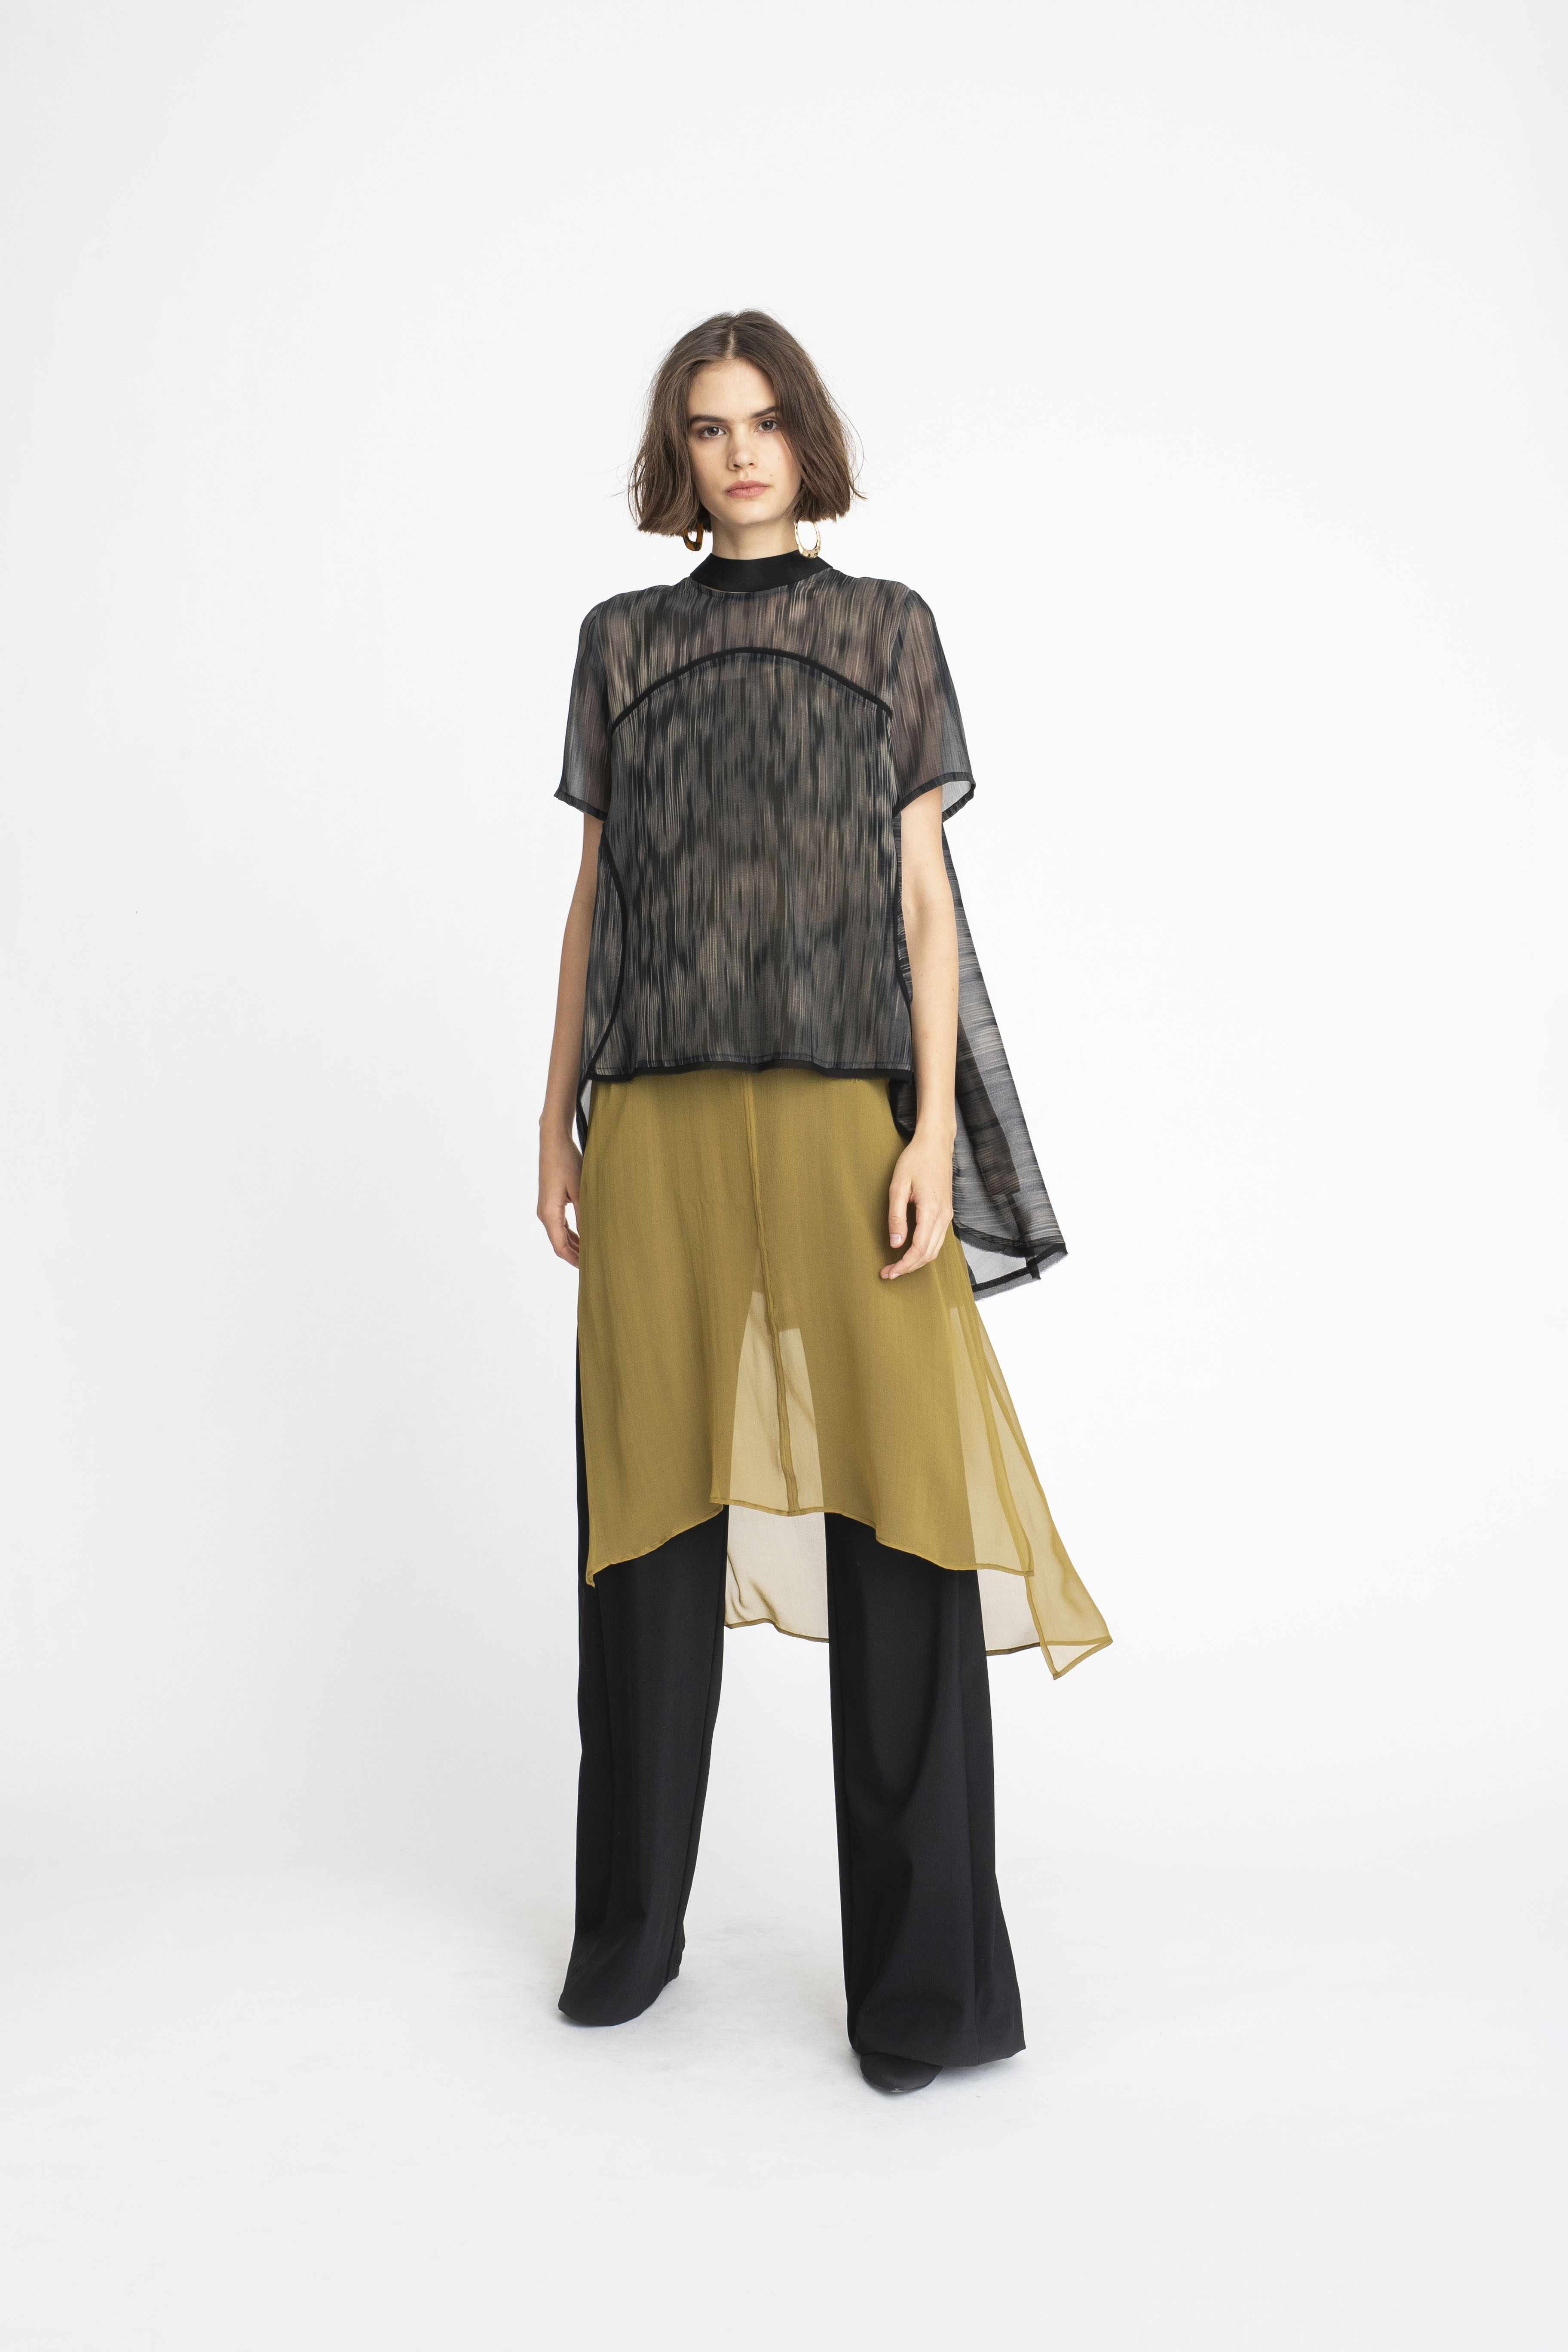 Tie-Capsule-Top_Swivel-Tunic_Panelled-Joust-Pant_TaylorBoutique_AW19_L60_1460 2